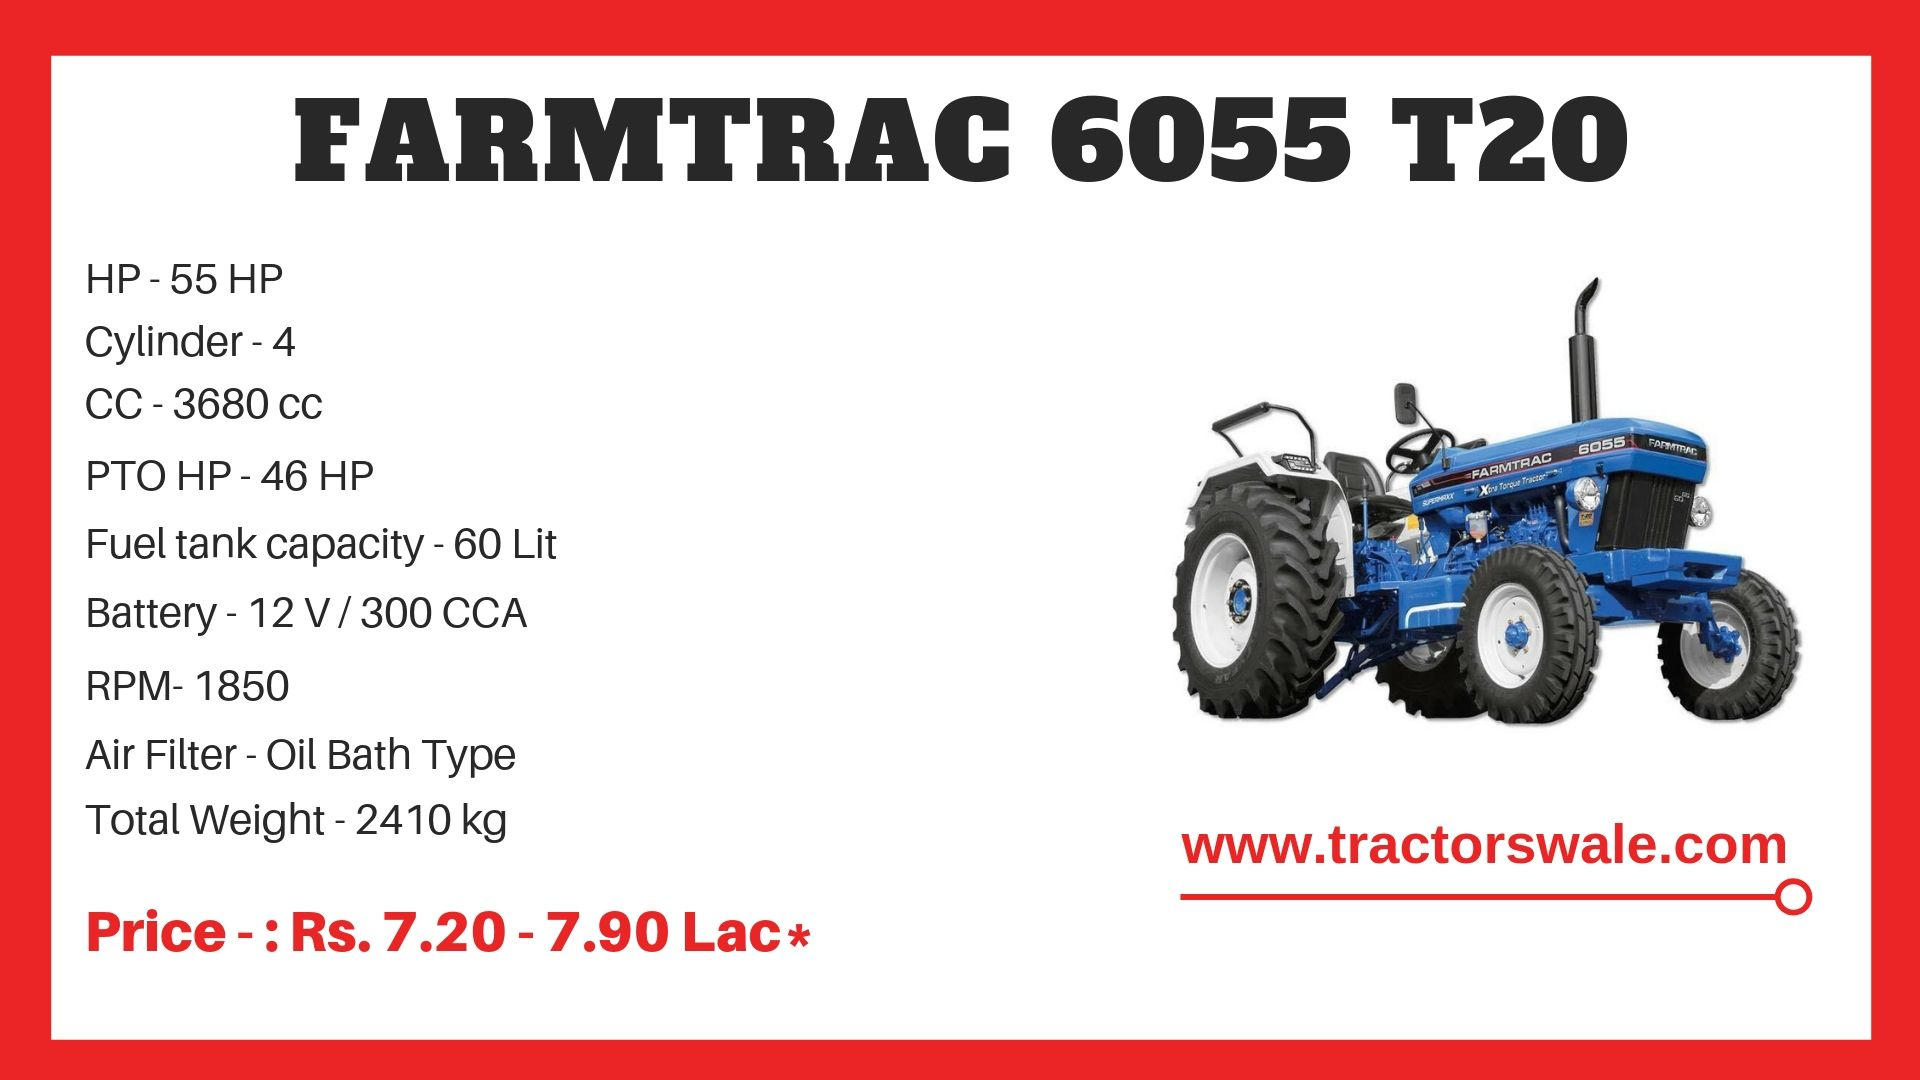 Farmtrac 6055 T20 Tractor Price, Full Feature, Specification